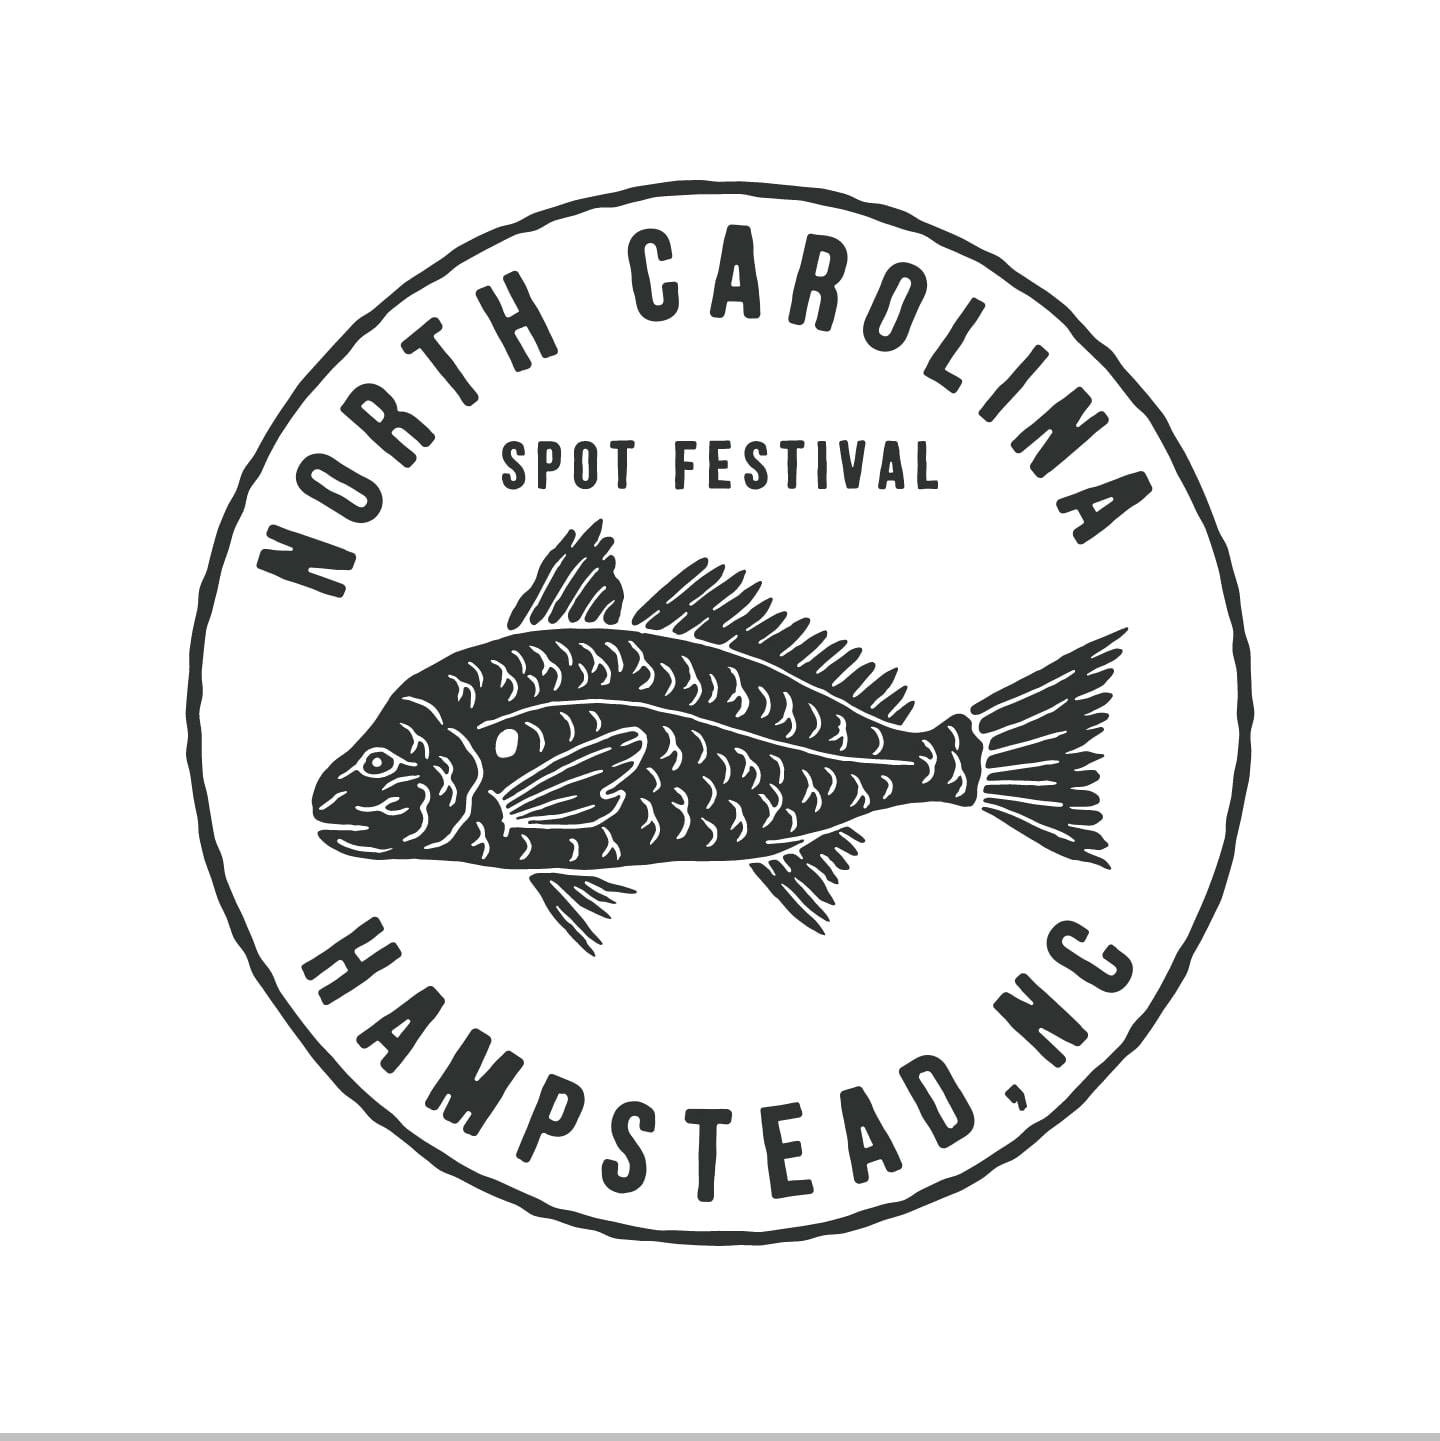 North Carolina Spot Festival